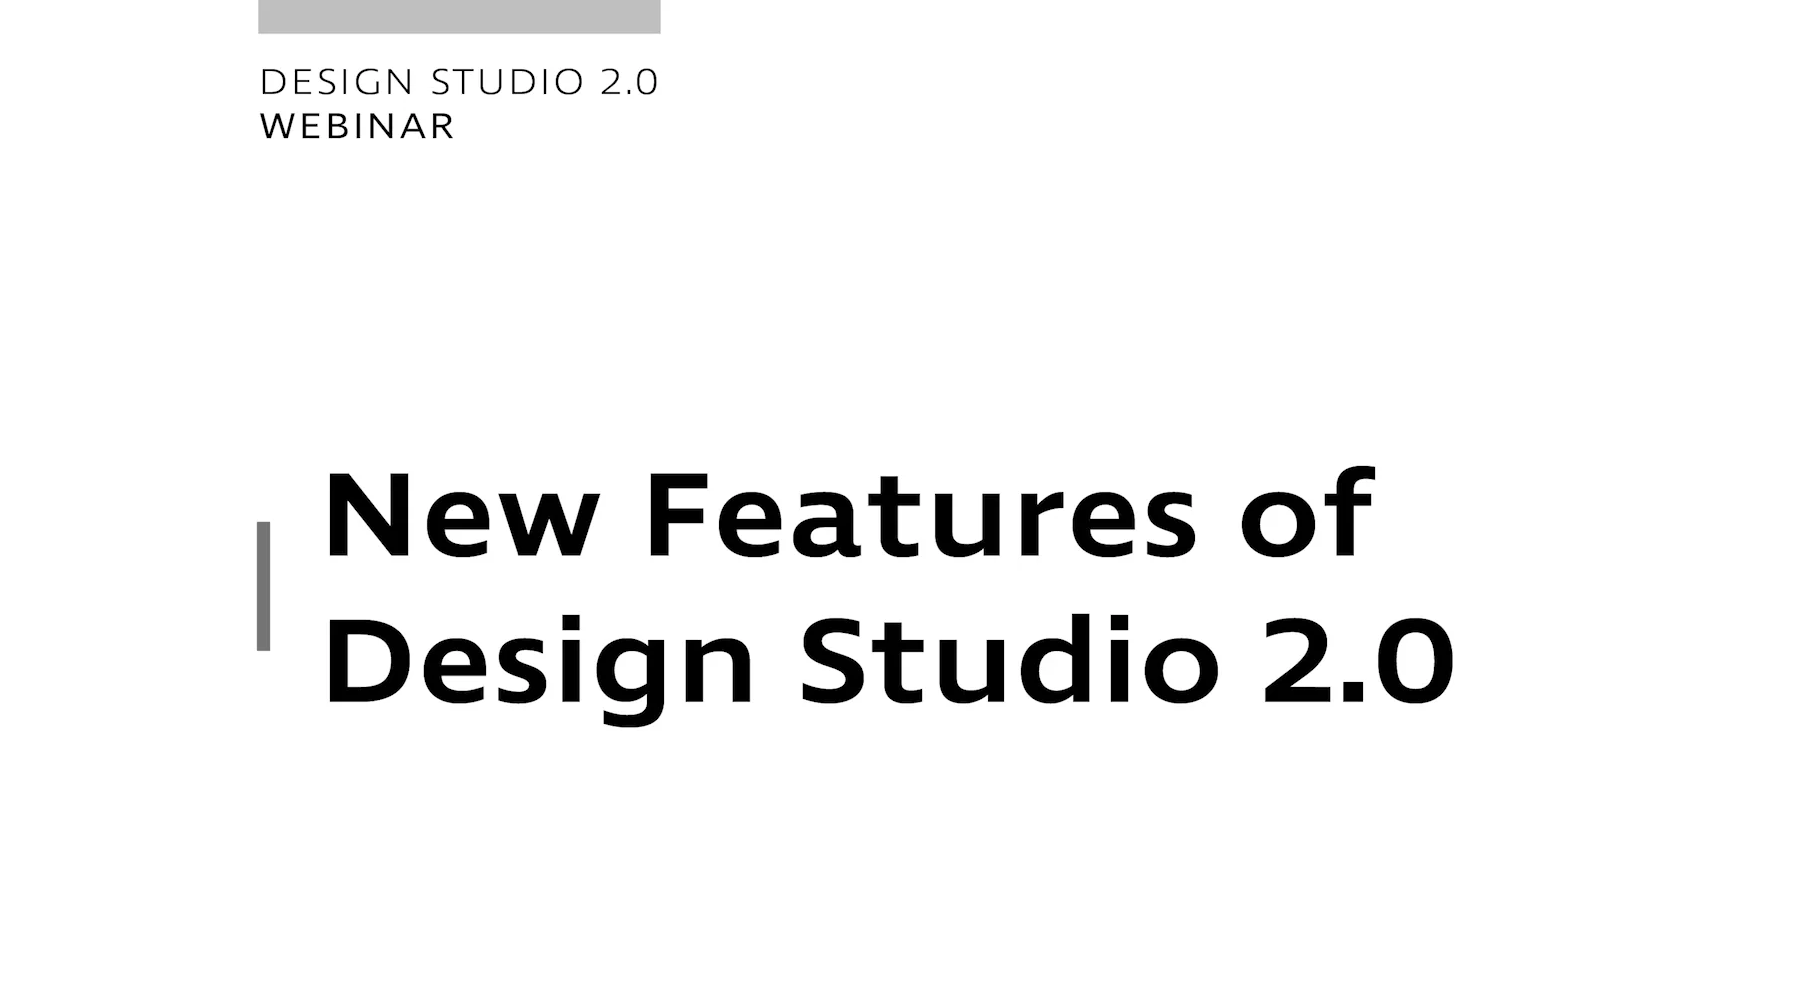 Design Studio 2.0 - New Features